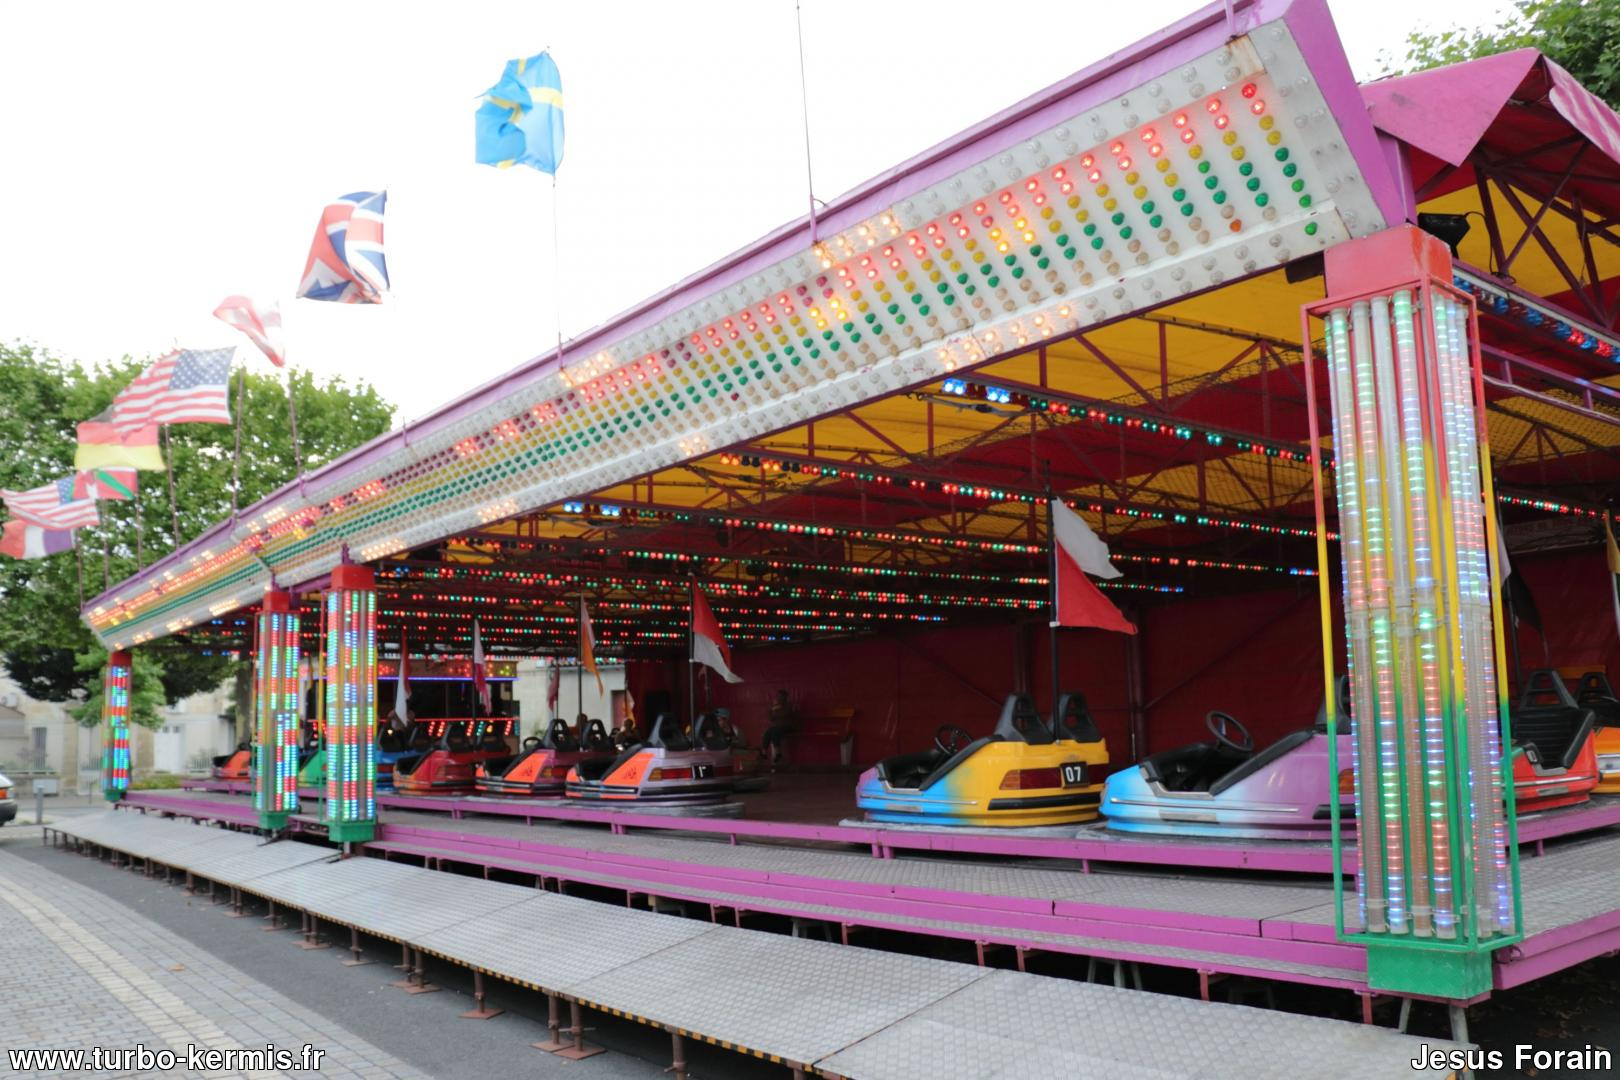 https://www.turbo-kermis.fr/gallery/img_turbo-kermis_74963.jpg